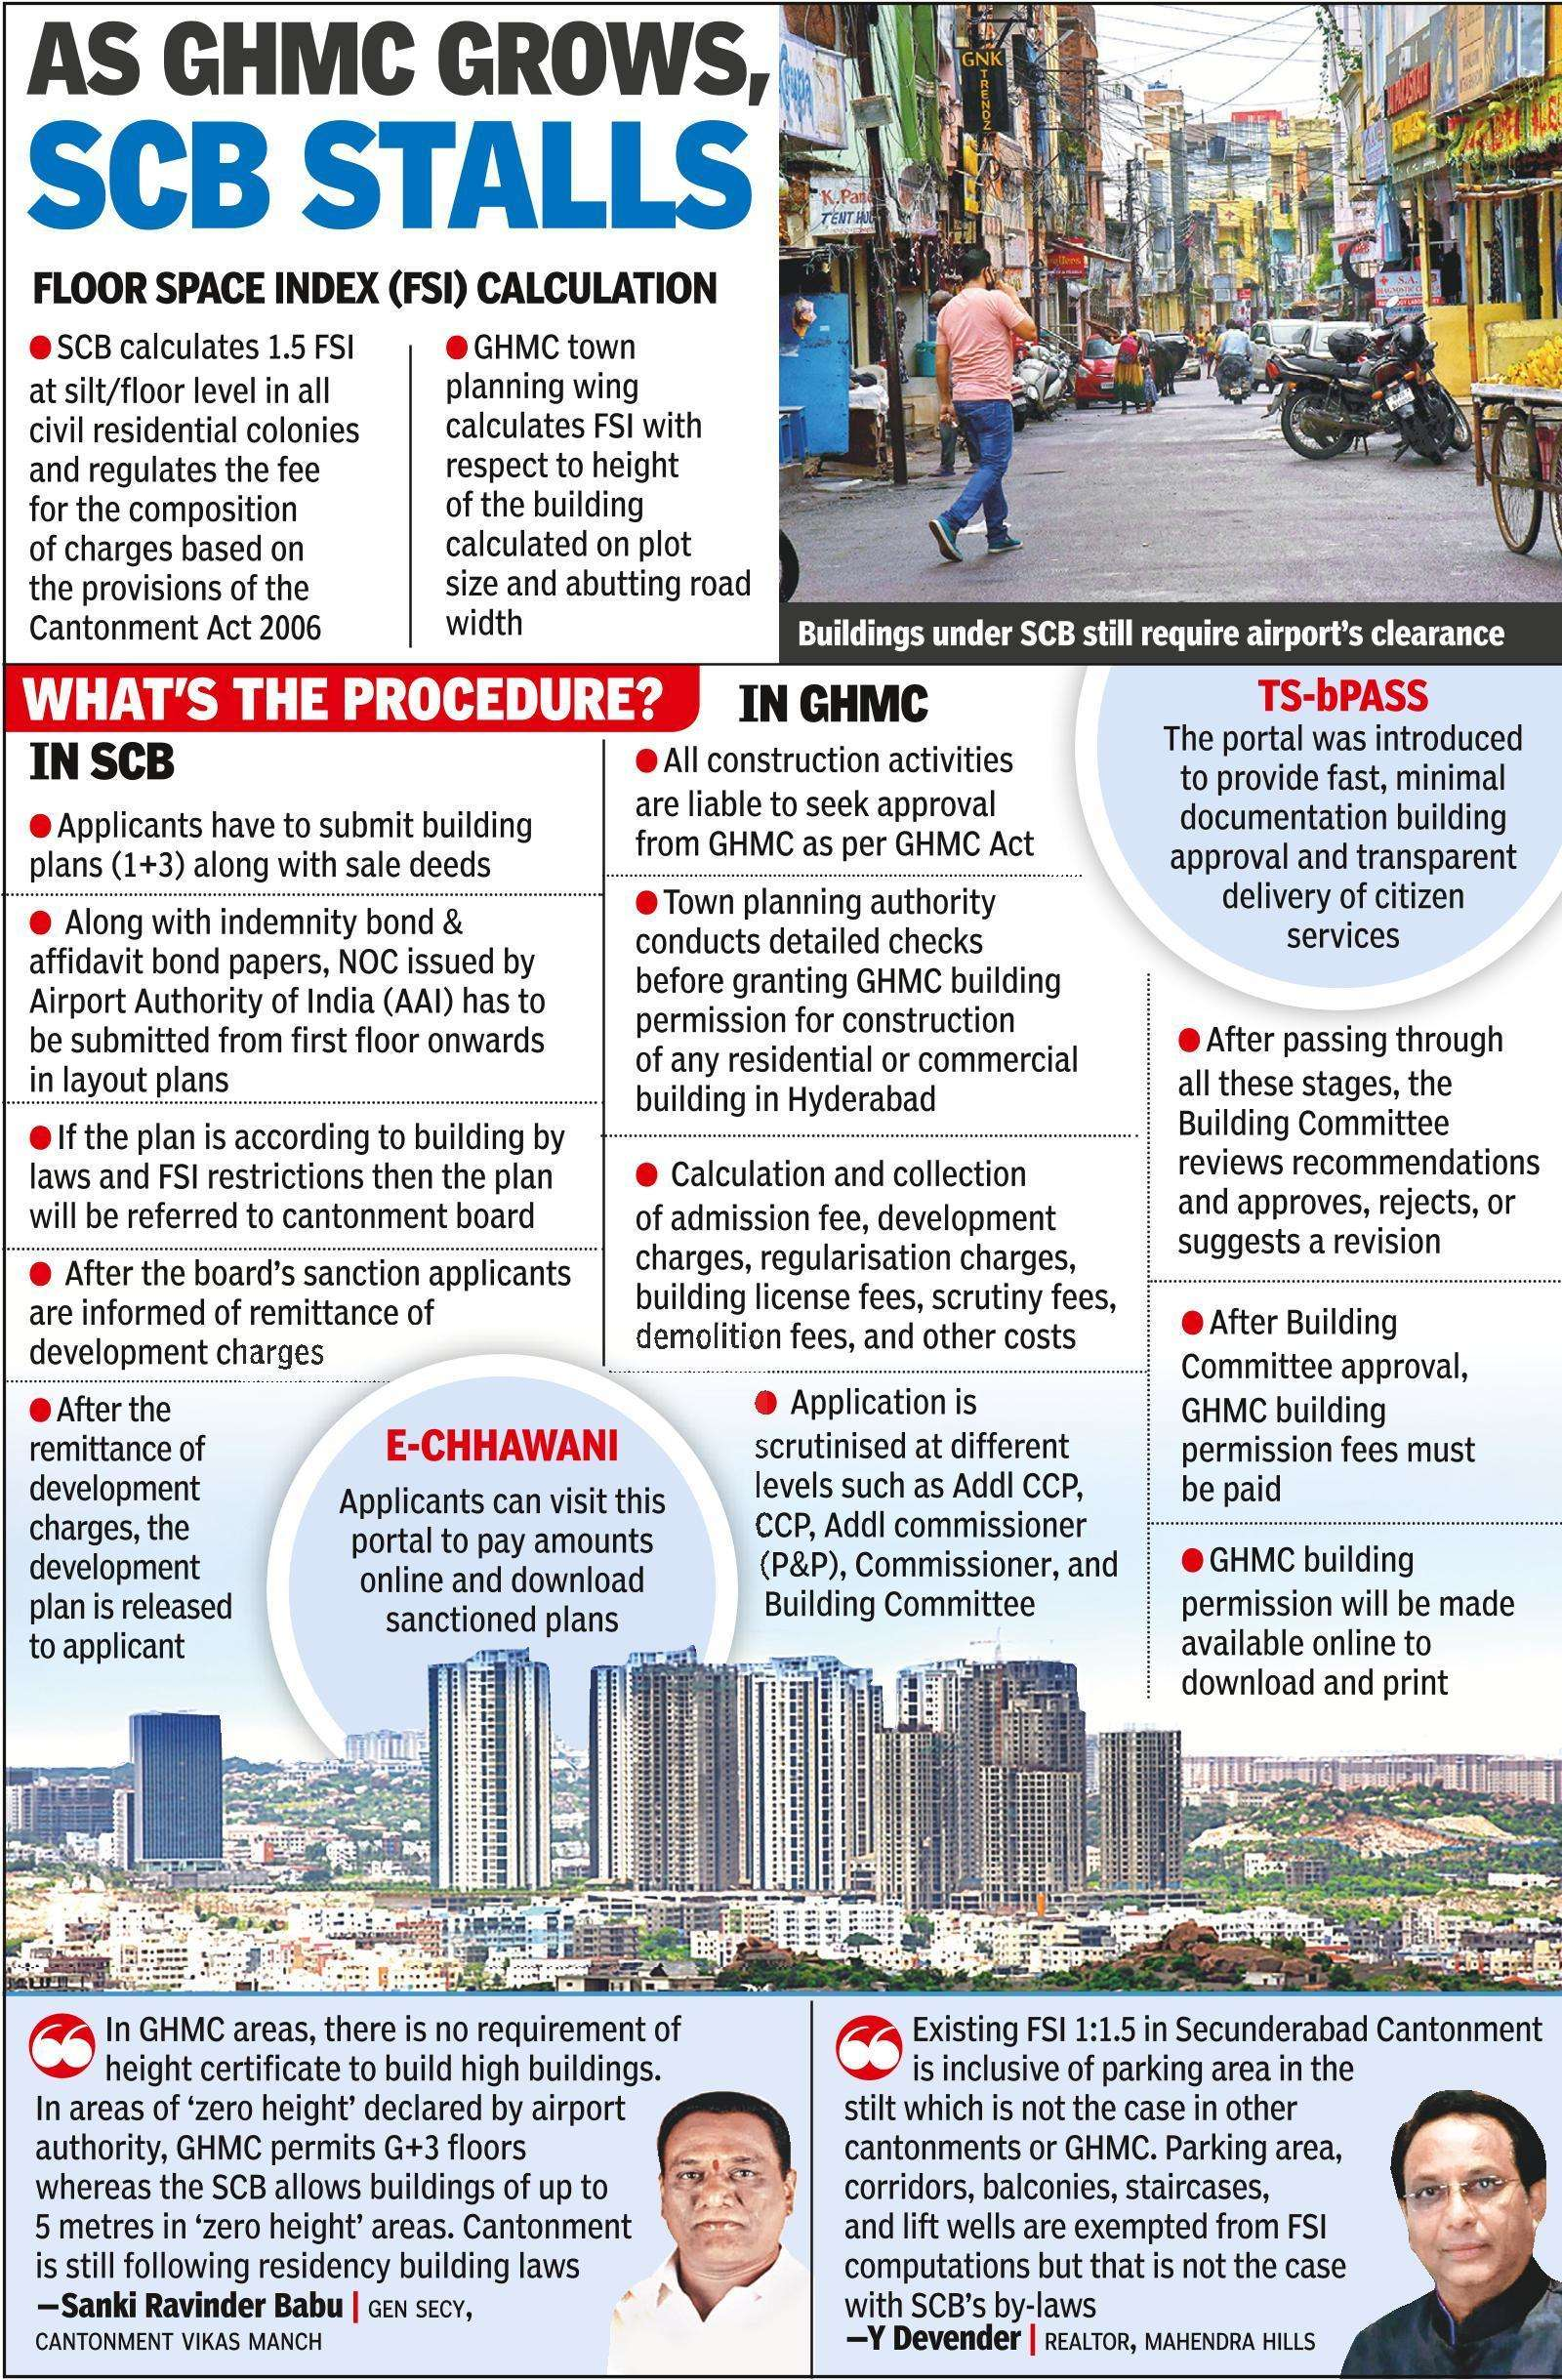 Secunderabad cantonment board's restrictive by-laws hampering realty growth